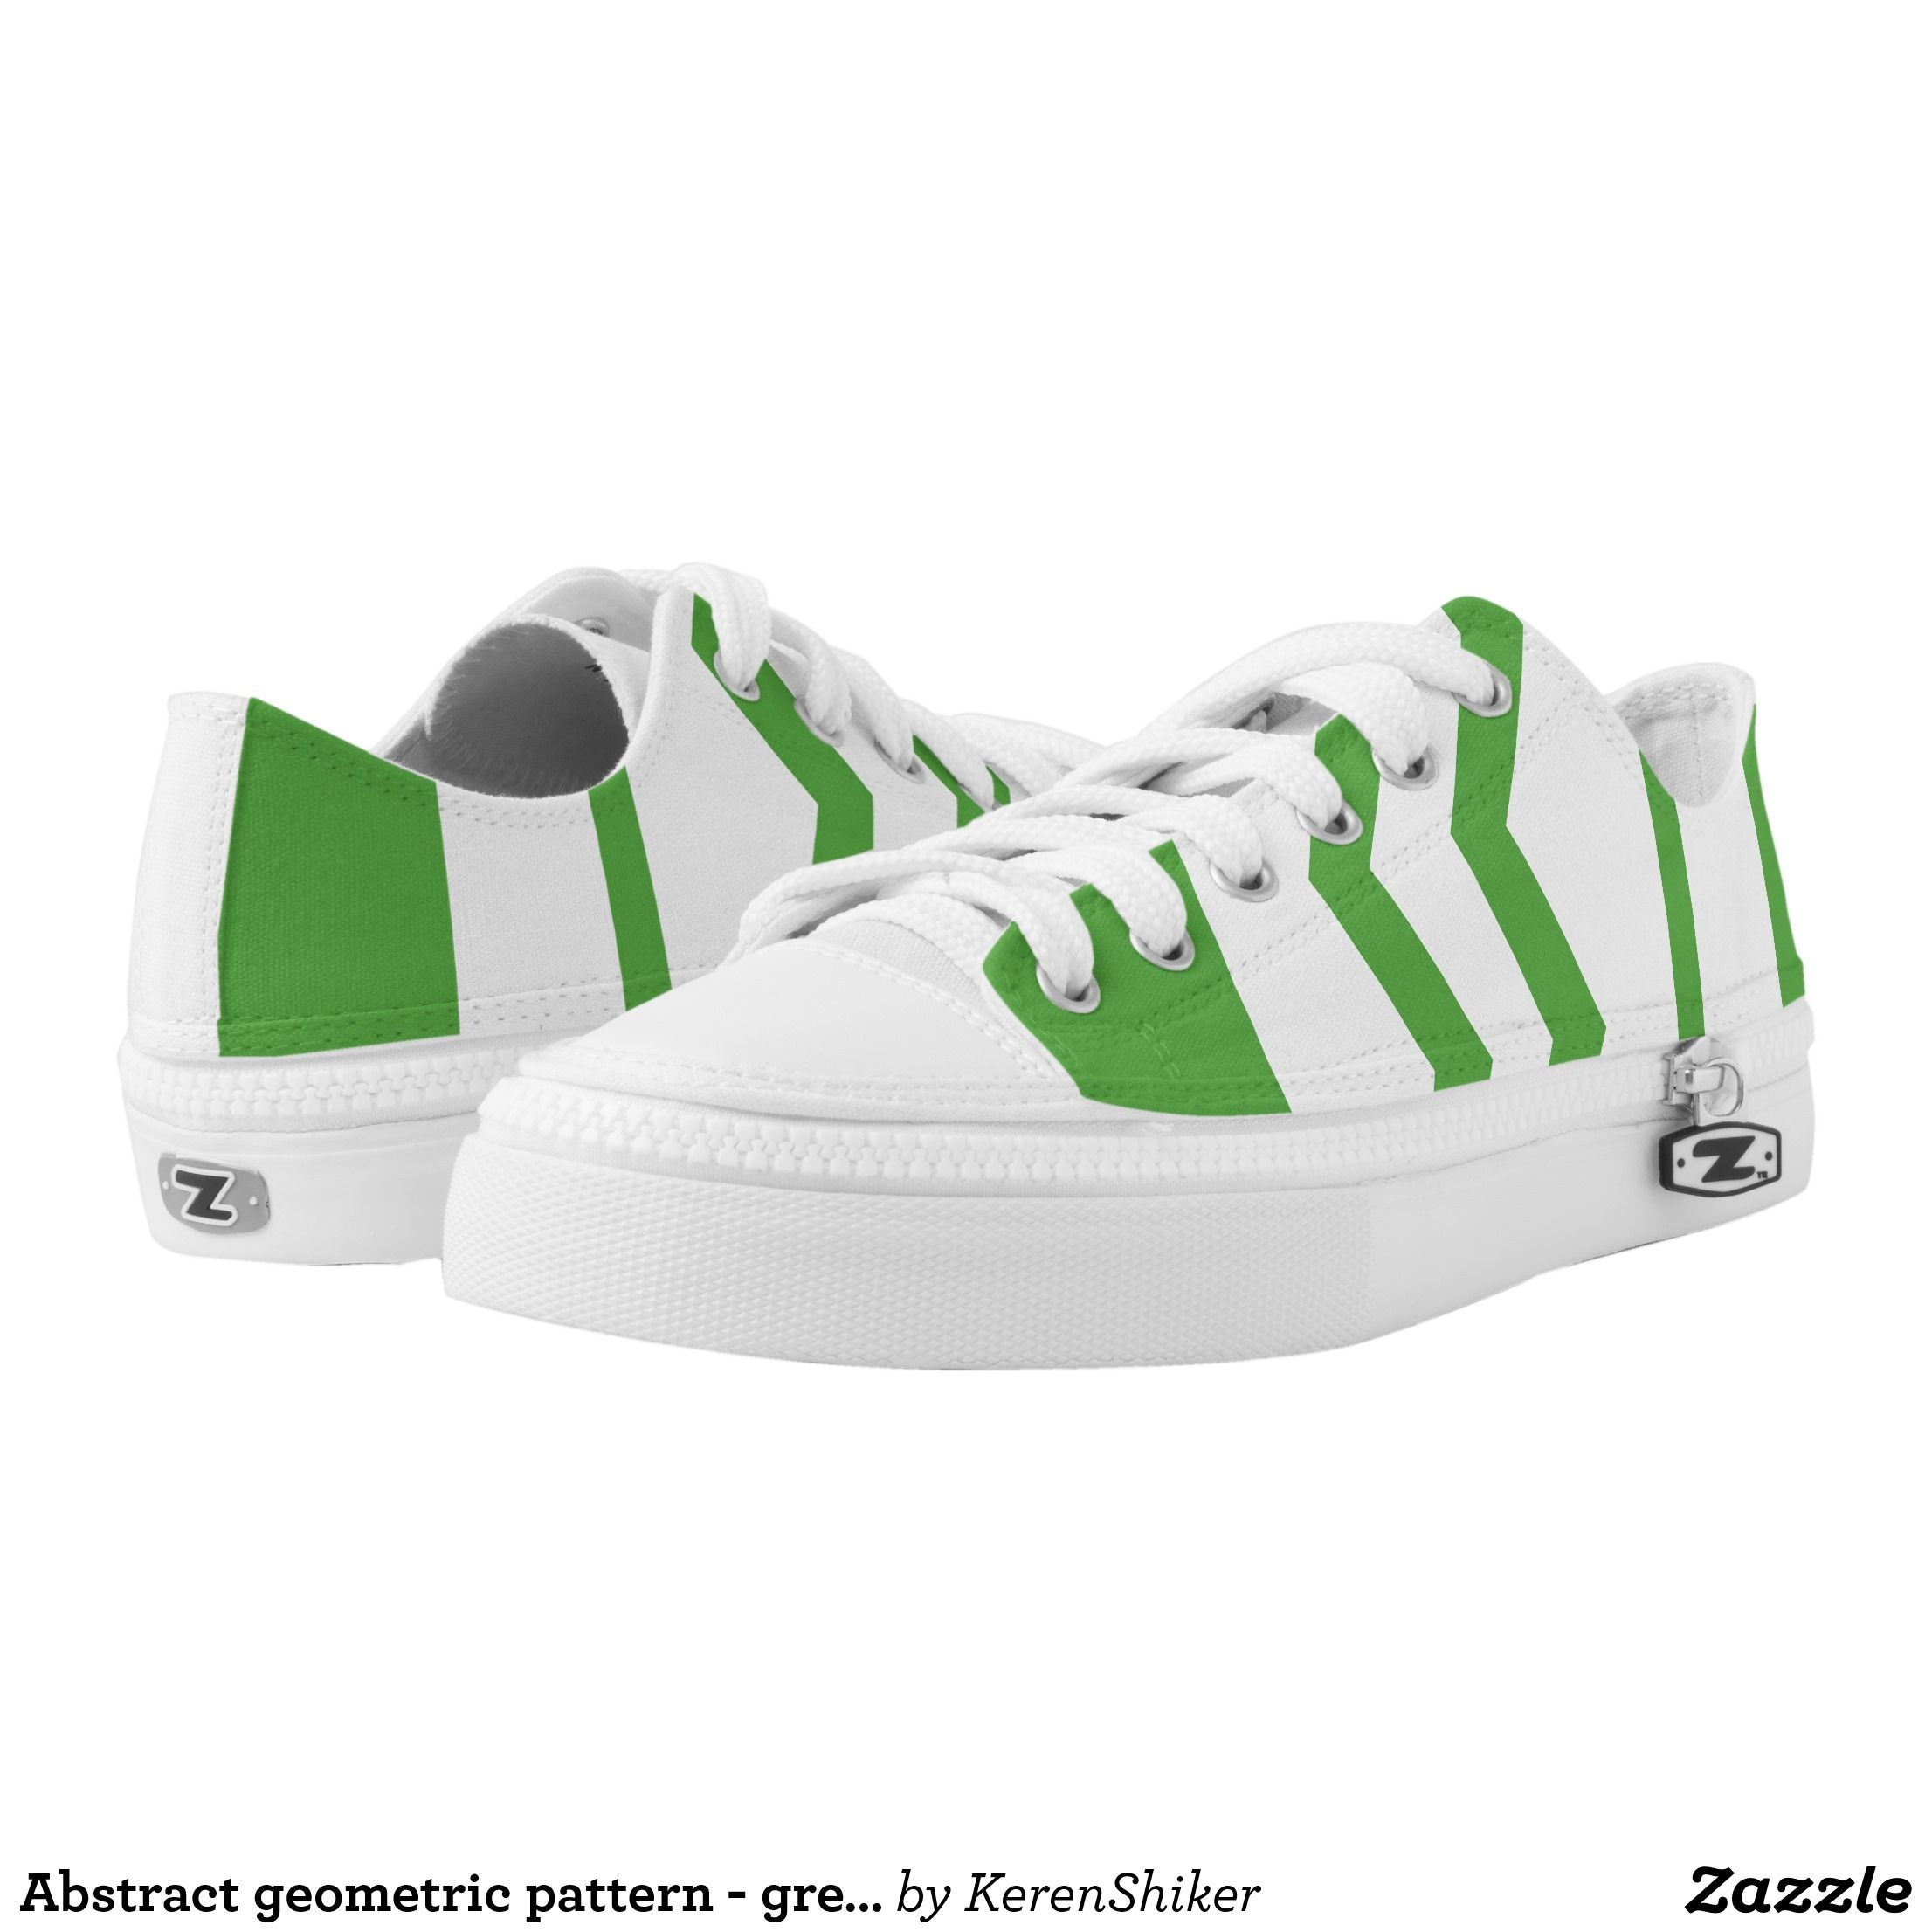 Abstract Geometric Pattern Green And White Low Top Sneakers Canvas Top Rubber Sole Athletic Shoes By Talent Canvas Slip On Shoes Sneakers Fashion Sneakers